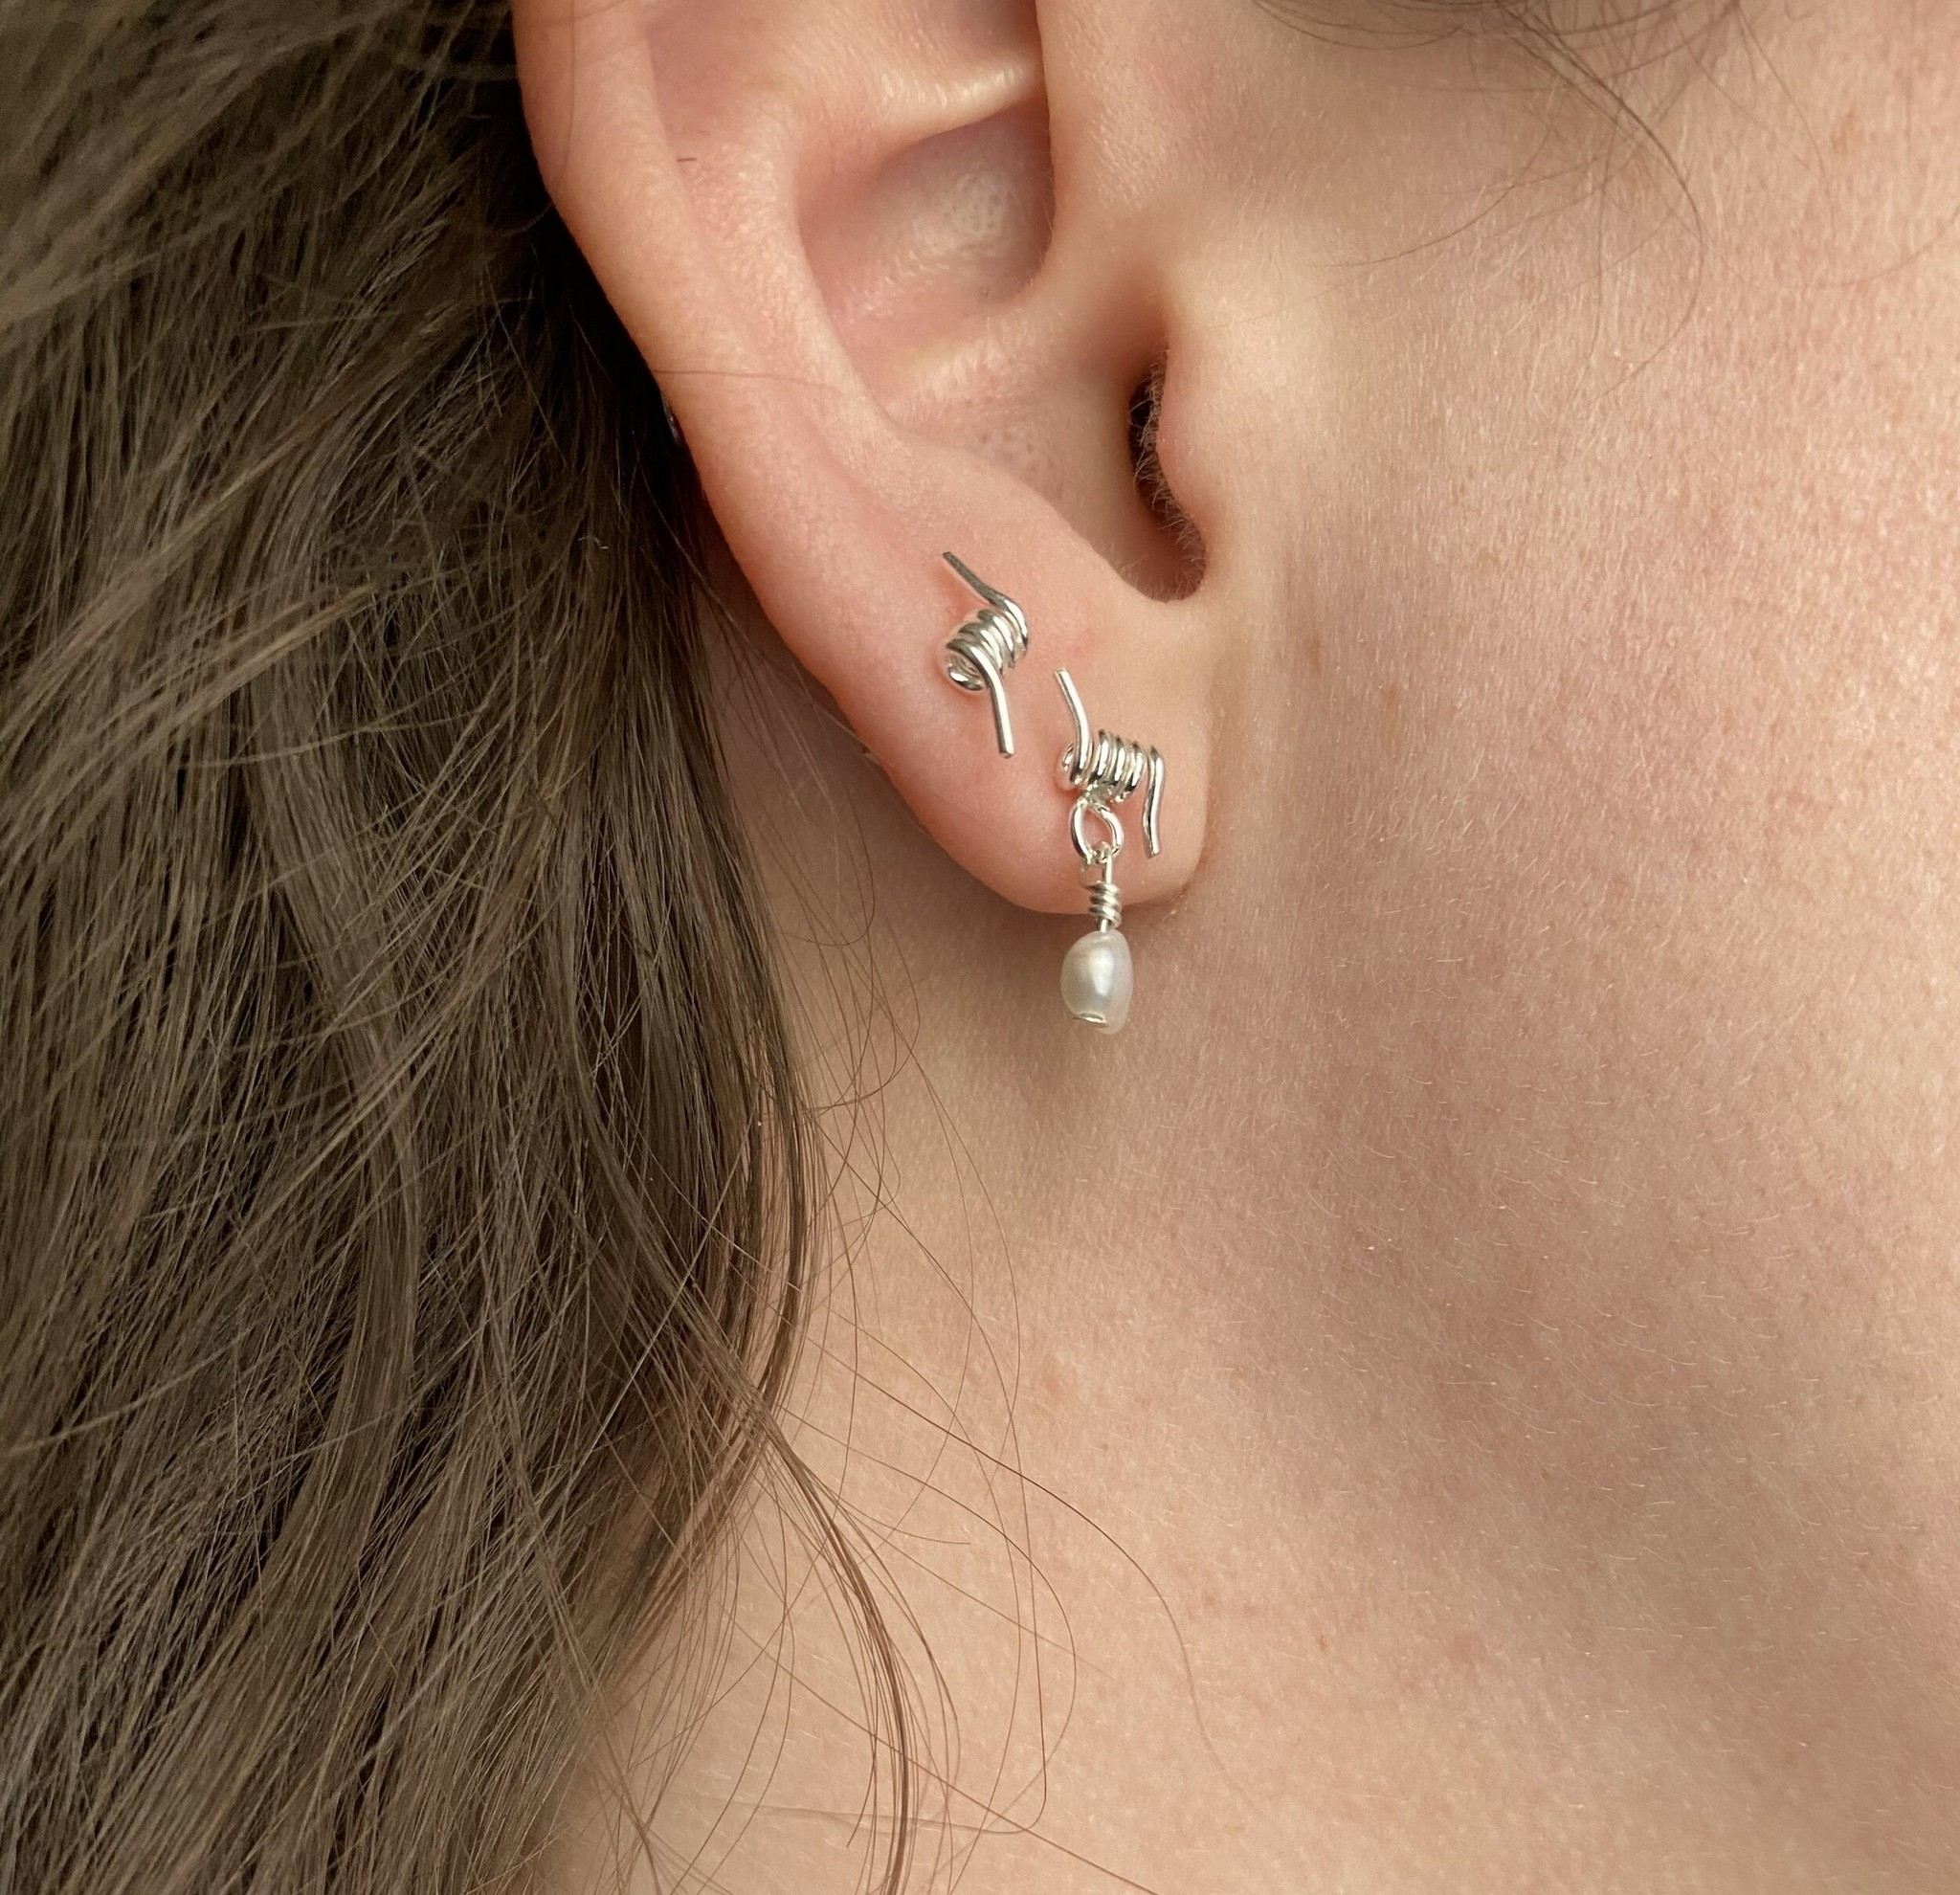 Chertova Barbed Studs in Sterling Silver with Pearl